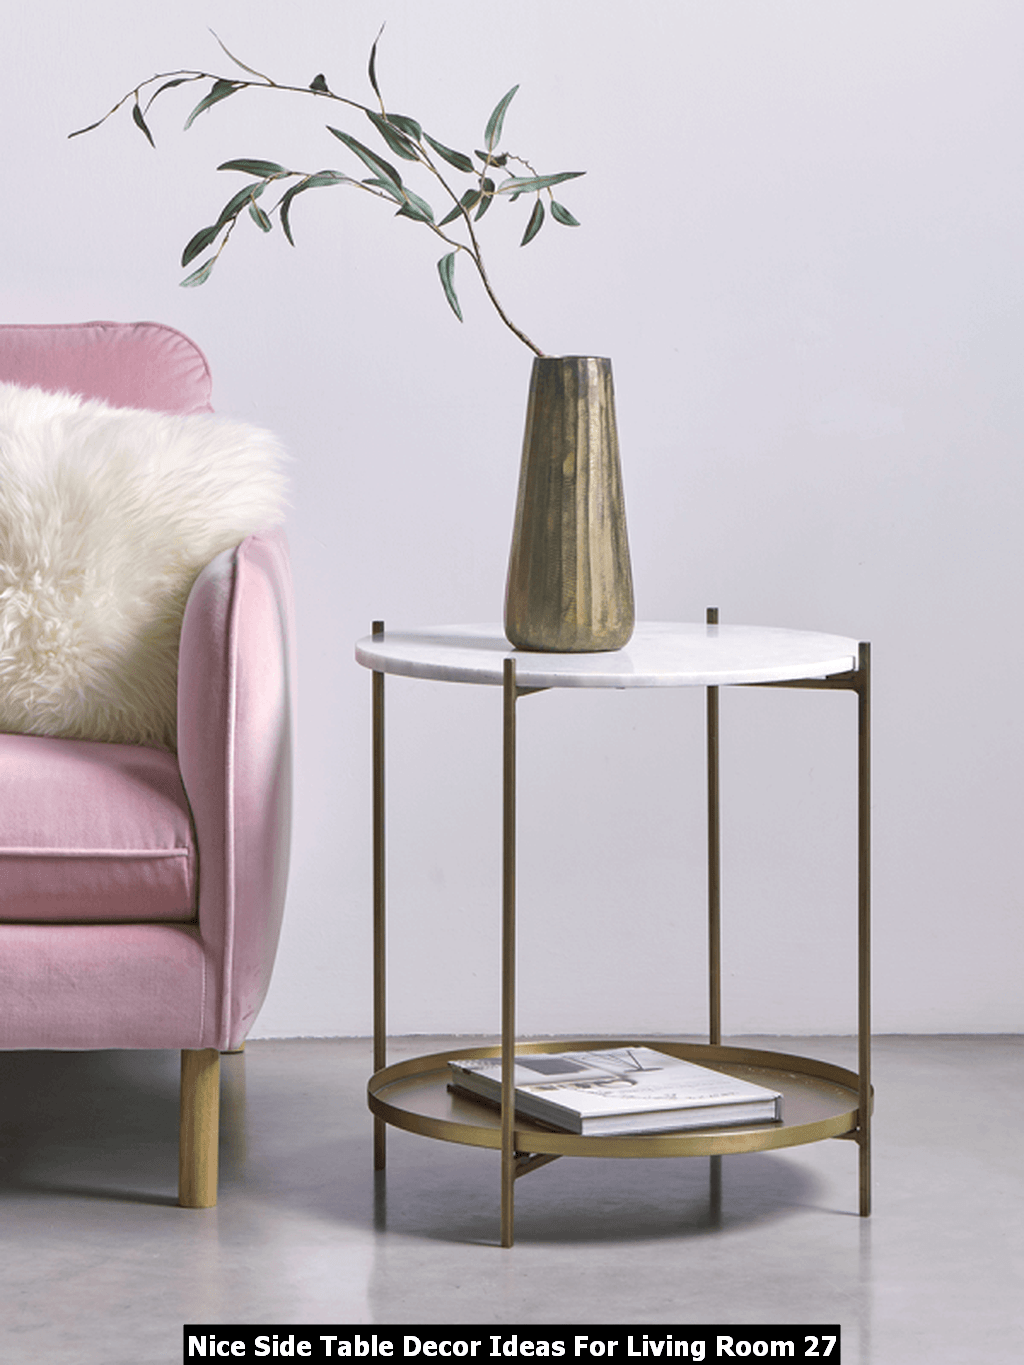 Pin On Living Room Decoration #side #table #decor #ideas #living #room